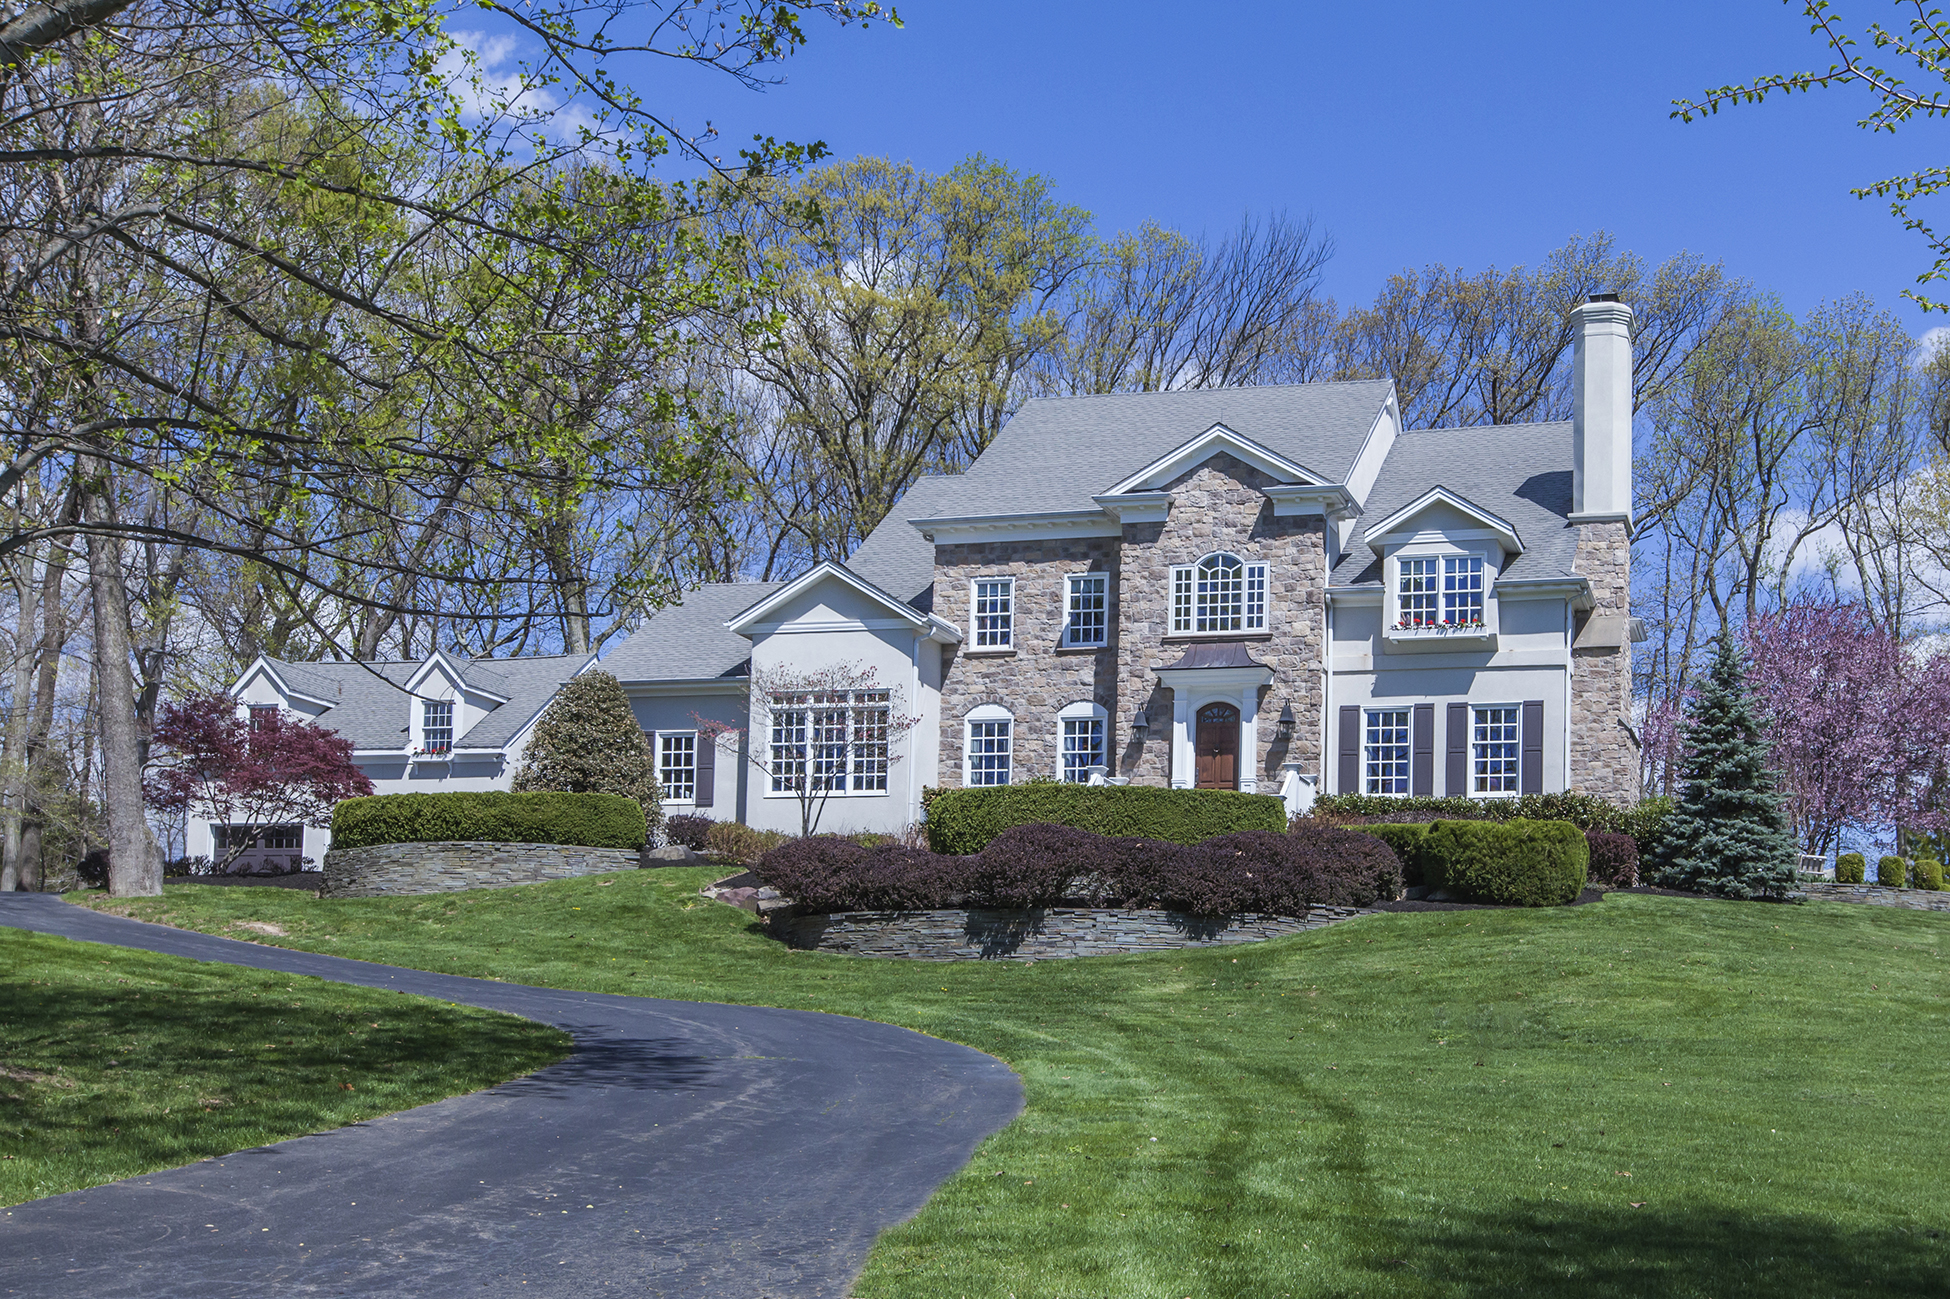 Single Family Home for Sale at Life on the Top - Montgomery 38 East Ridge Road Skillman, New Jersey 08558 United States